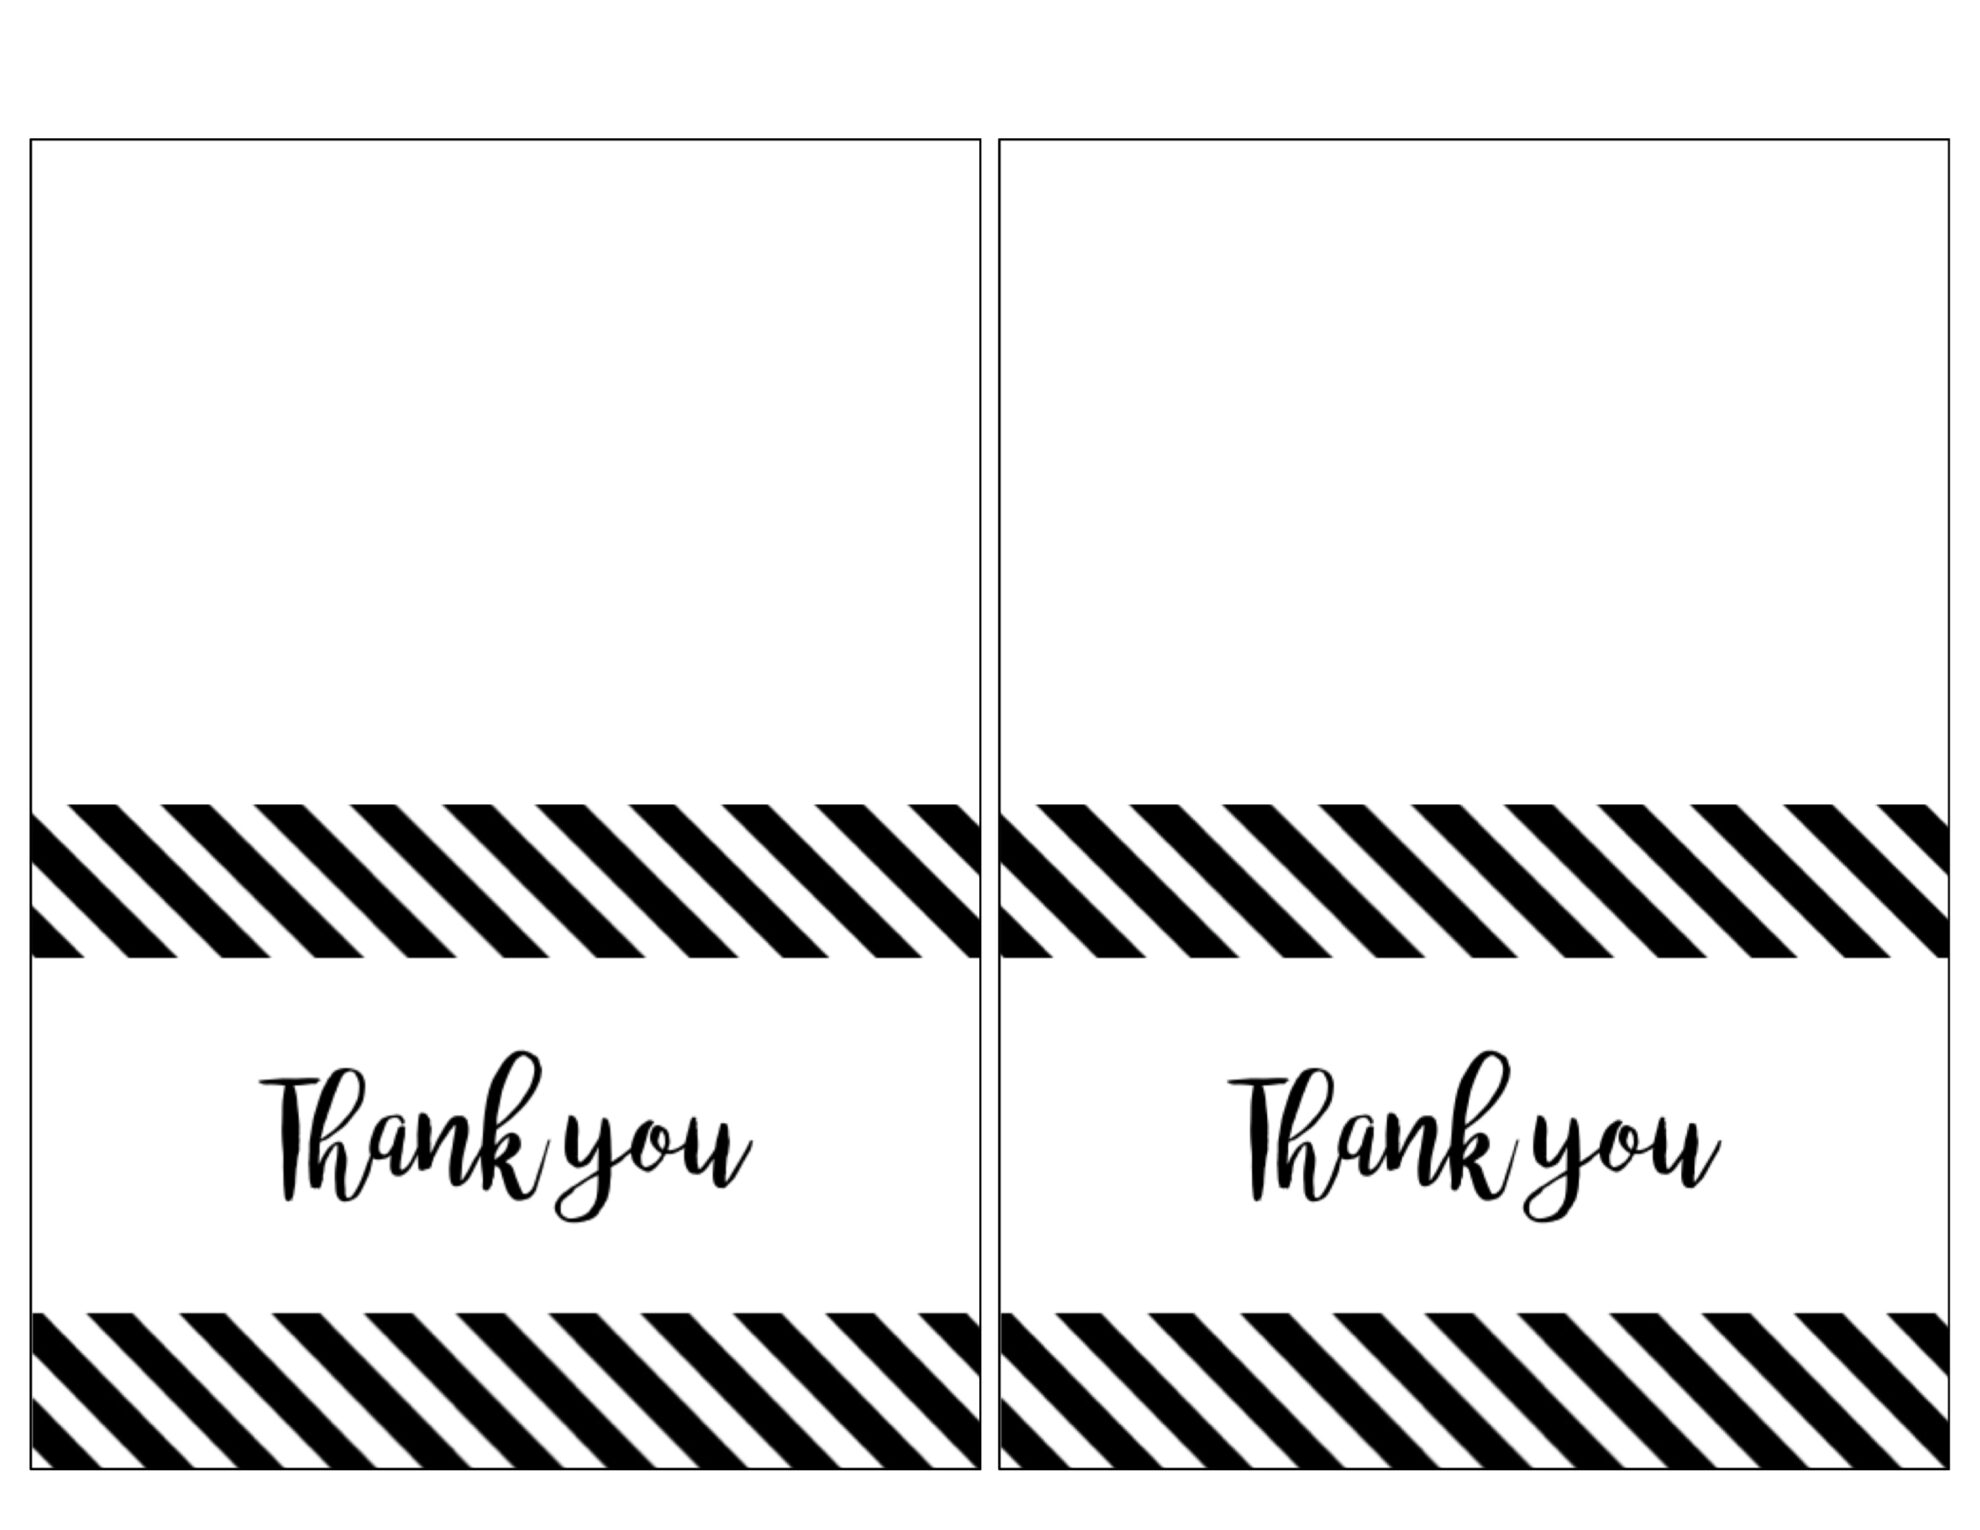 photo about Printable Thank You Cards Black and White titled Free of charge Printable Thank Yourself Playing cards For Instructors Black And White